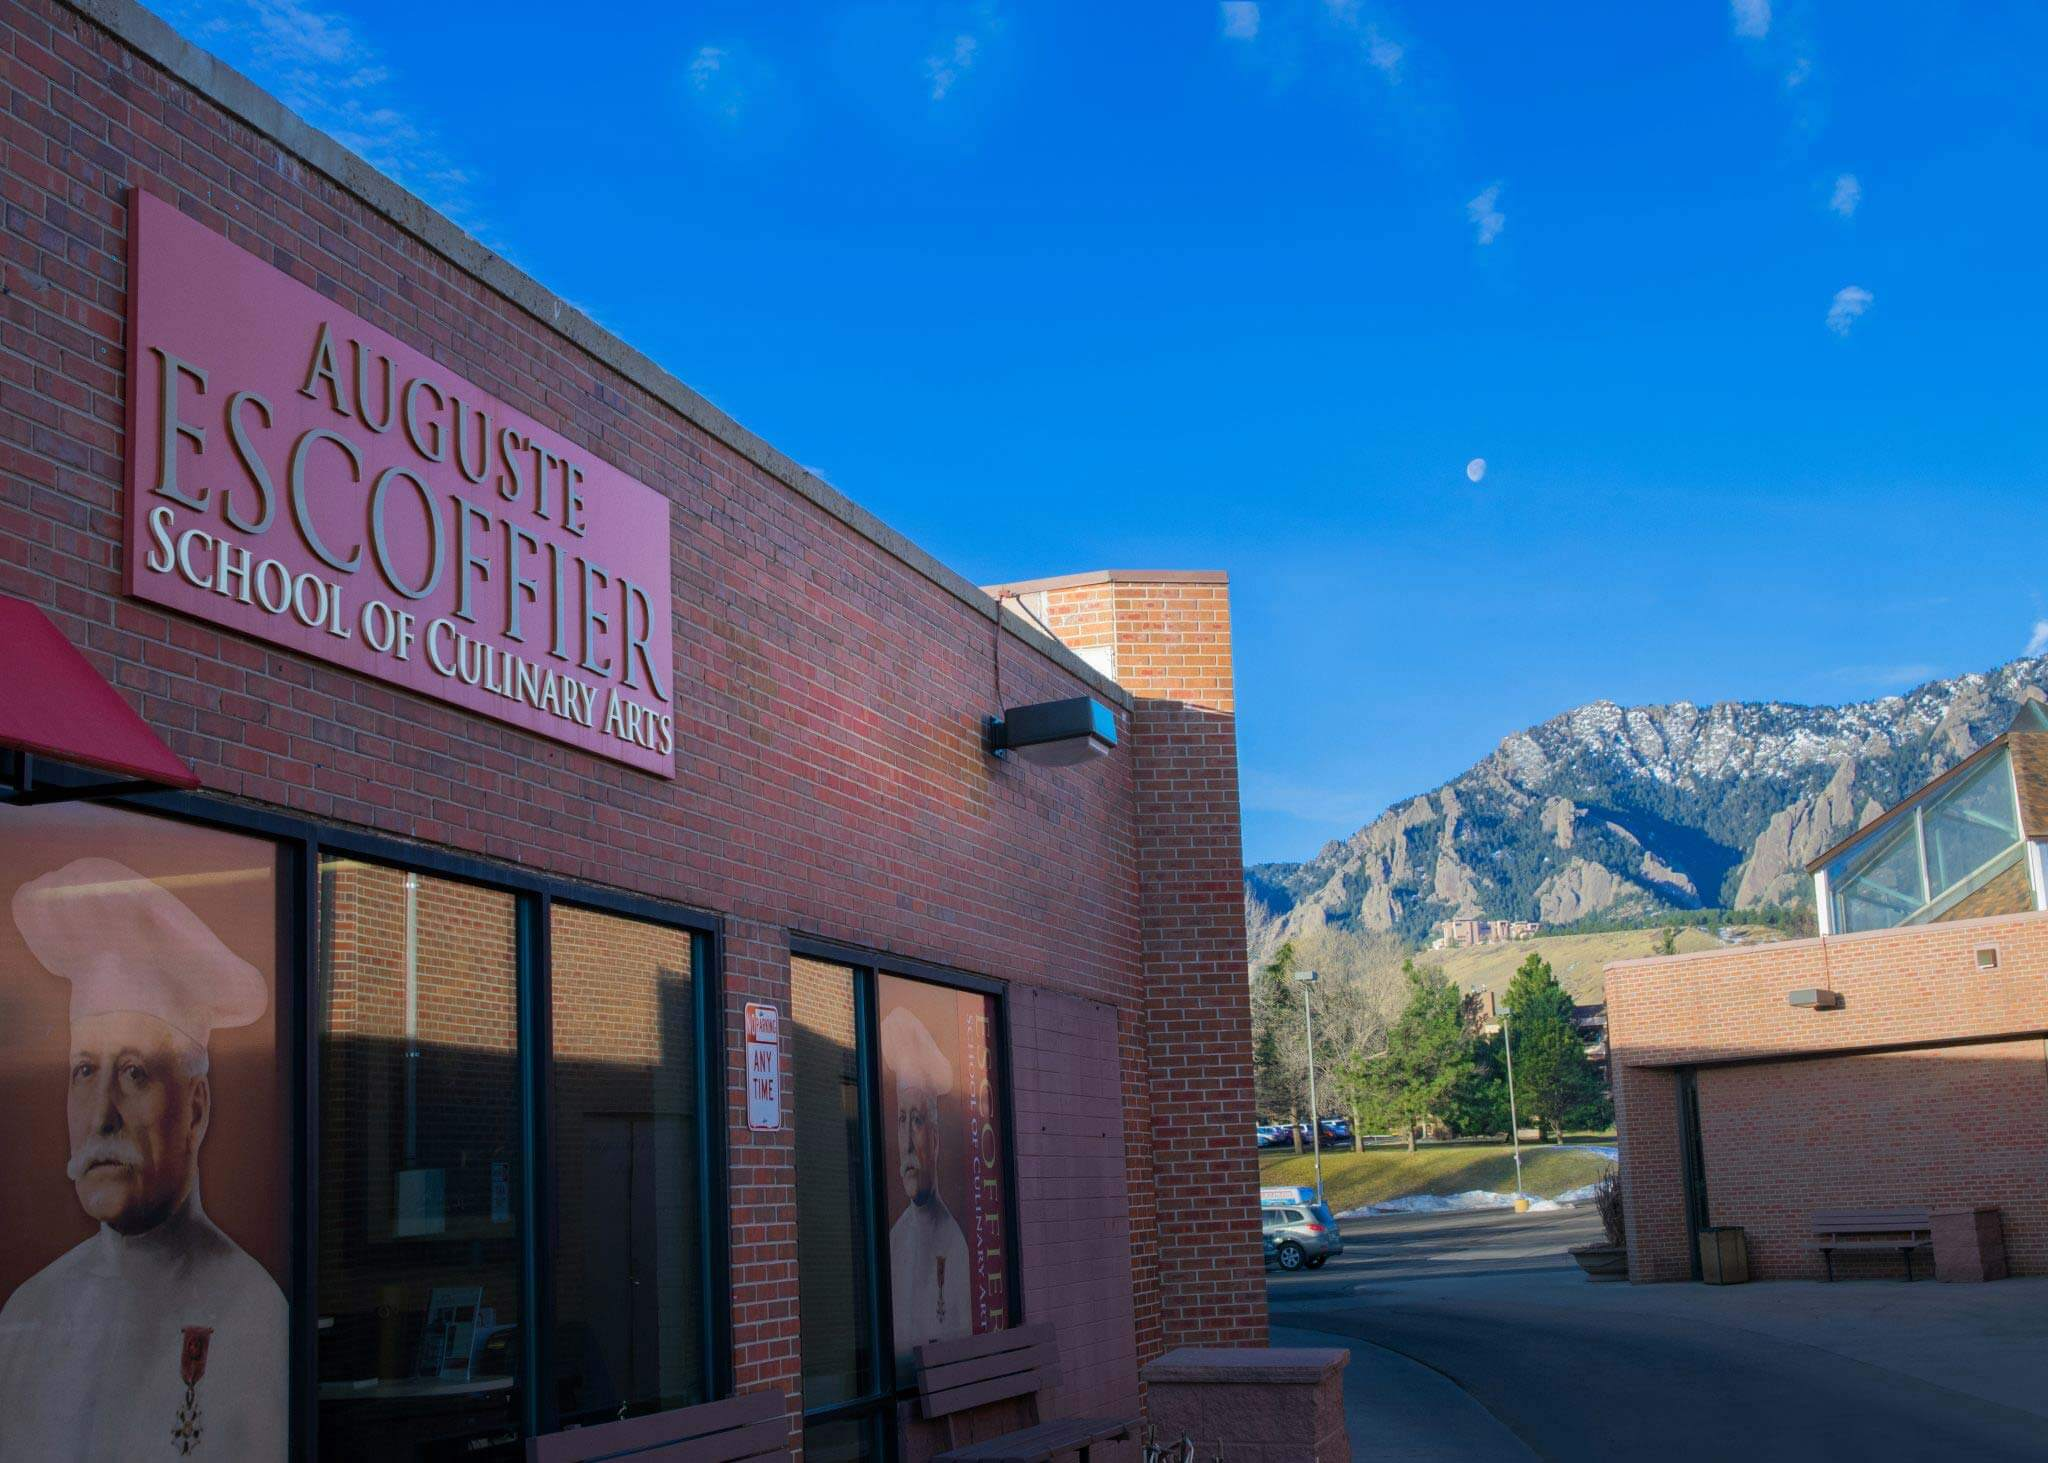 Boulder Culinary School Escoffier